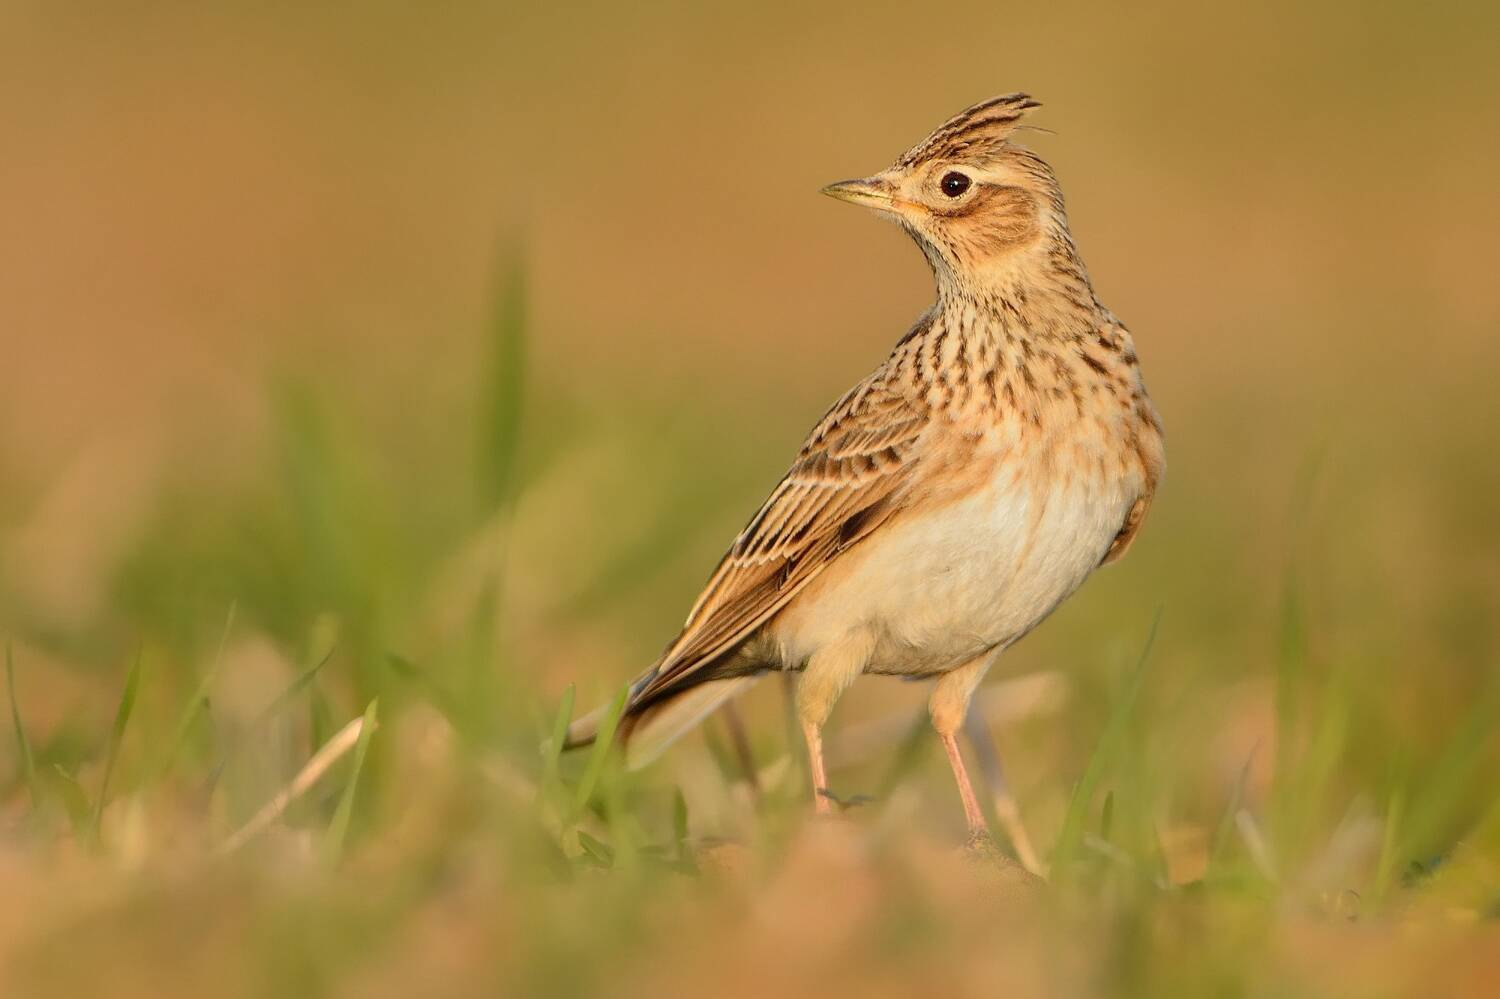 A close-up of a skylark standing in a grassy field. It has pale, golden brown feathers with a cream tummy. It has a raised crest on top of its head.